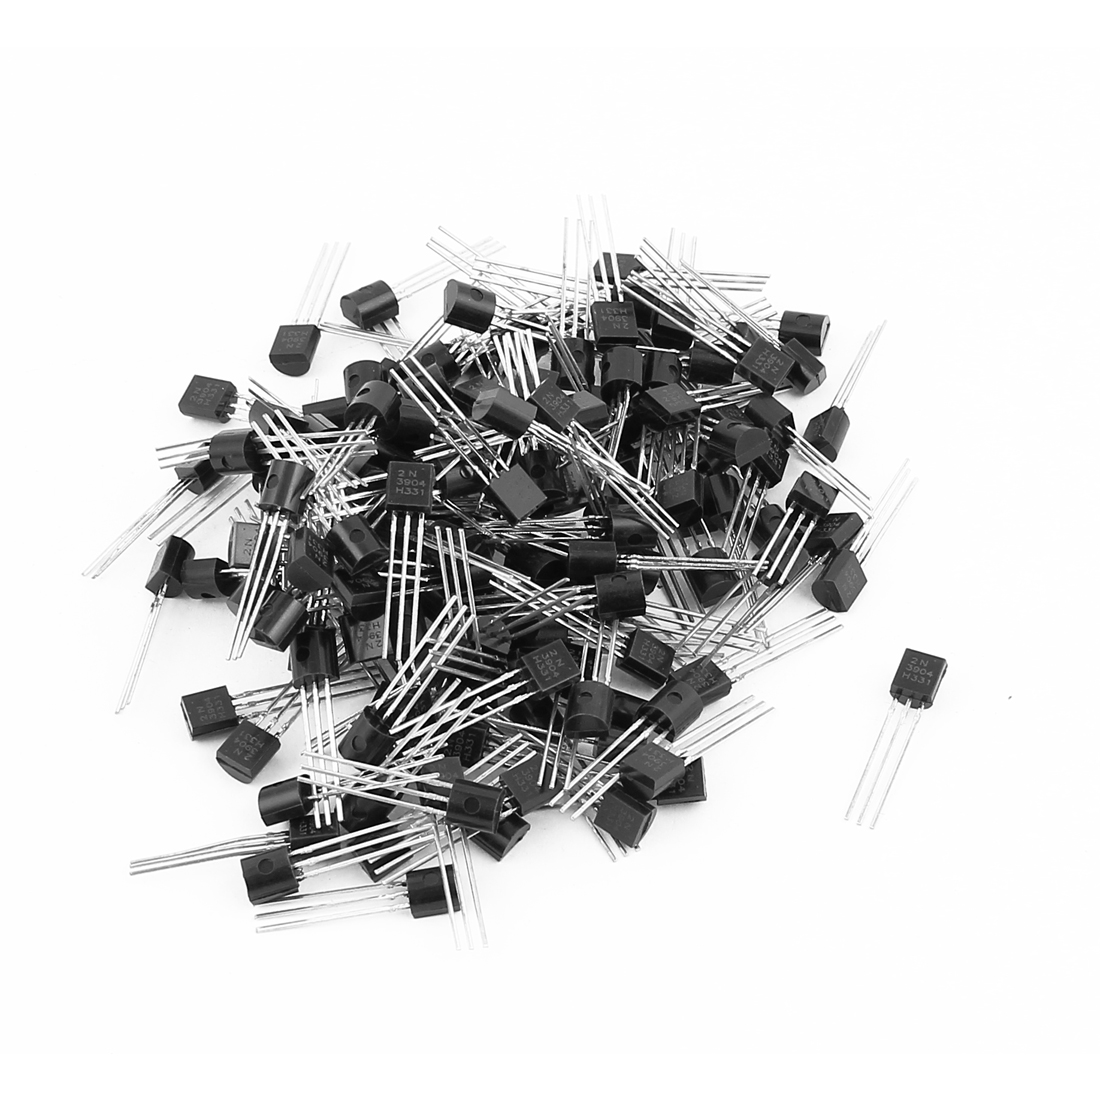 150 Pcs 2N3904 TO-92 NPN Bipolar Low Power Junction Transistors 40V 0.2A